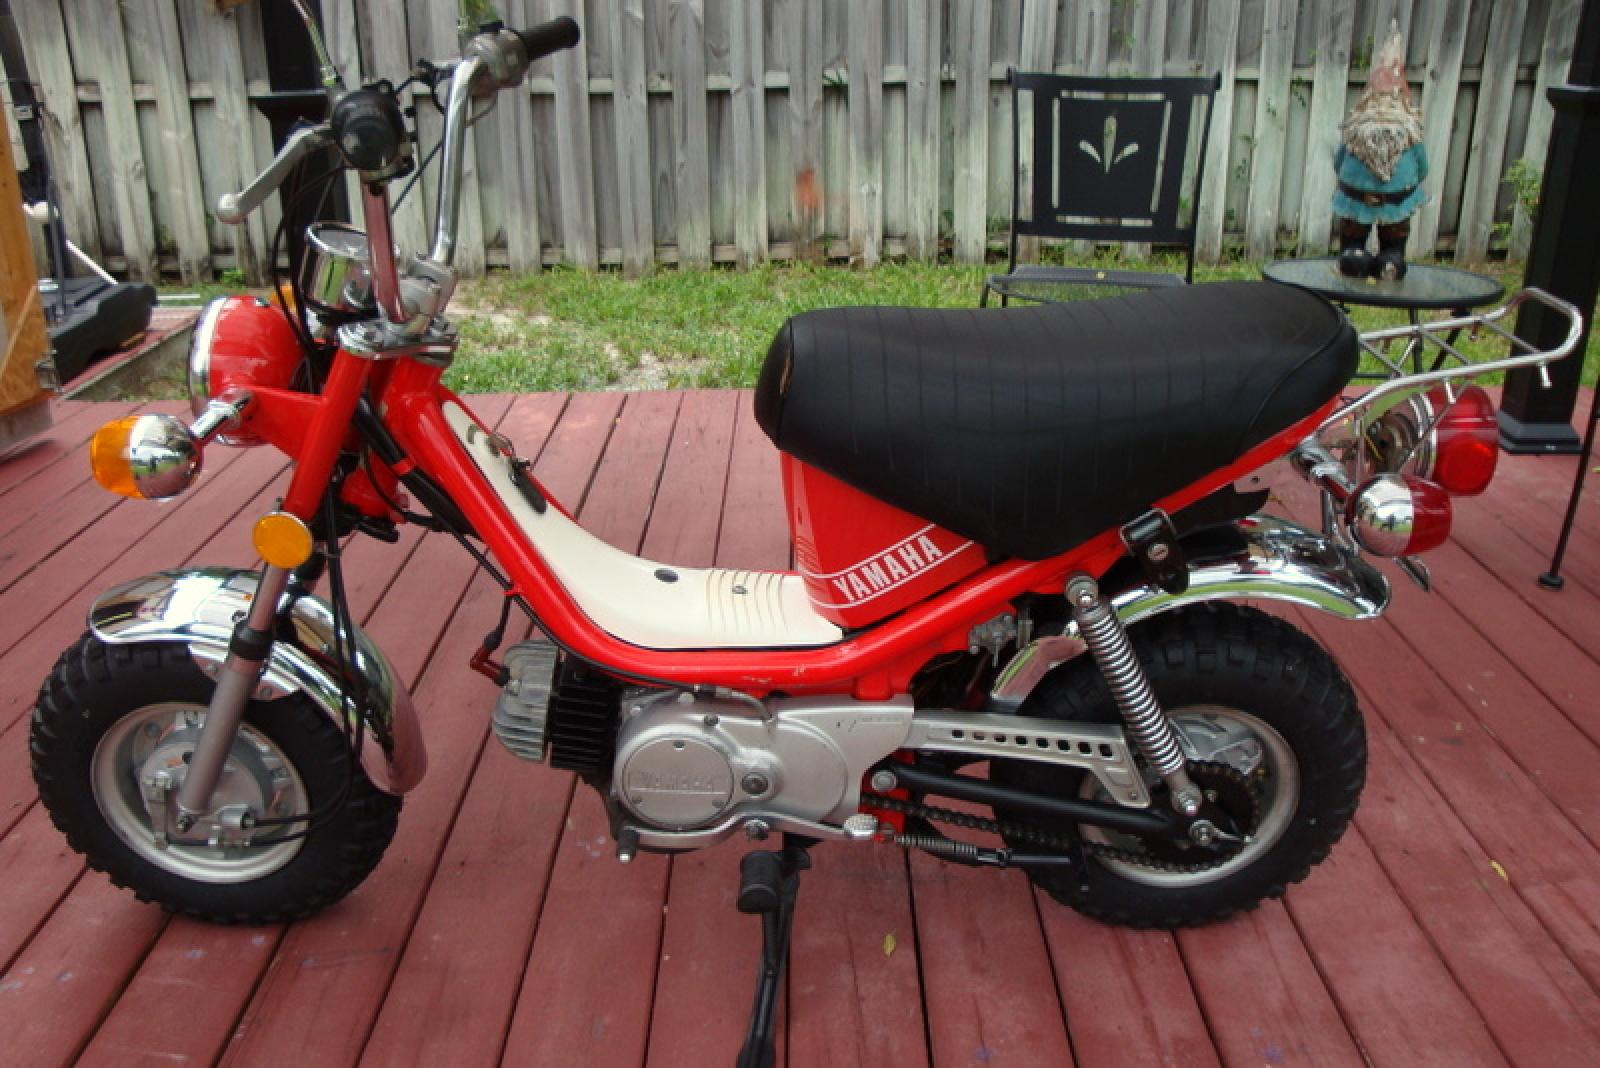 Yamaha chappy motorcycle picture 5